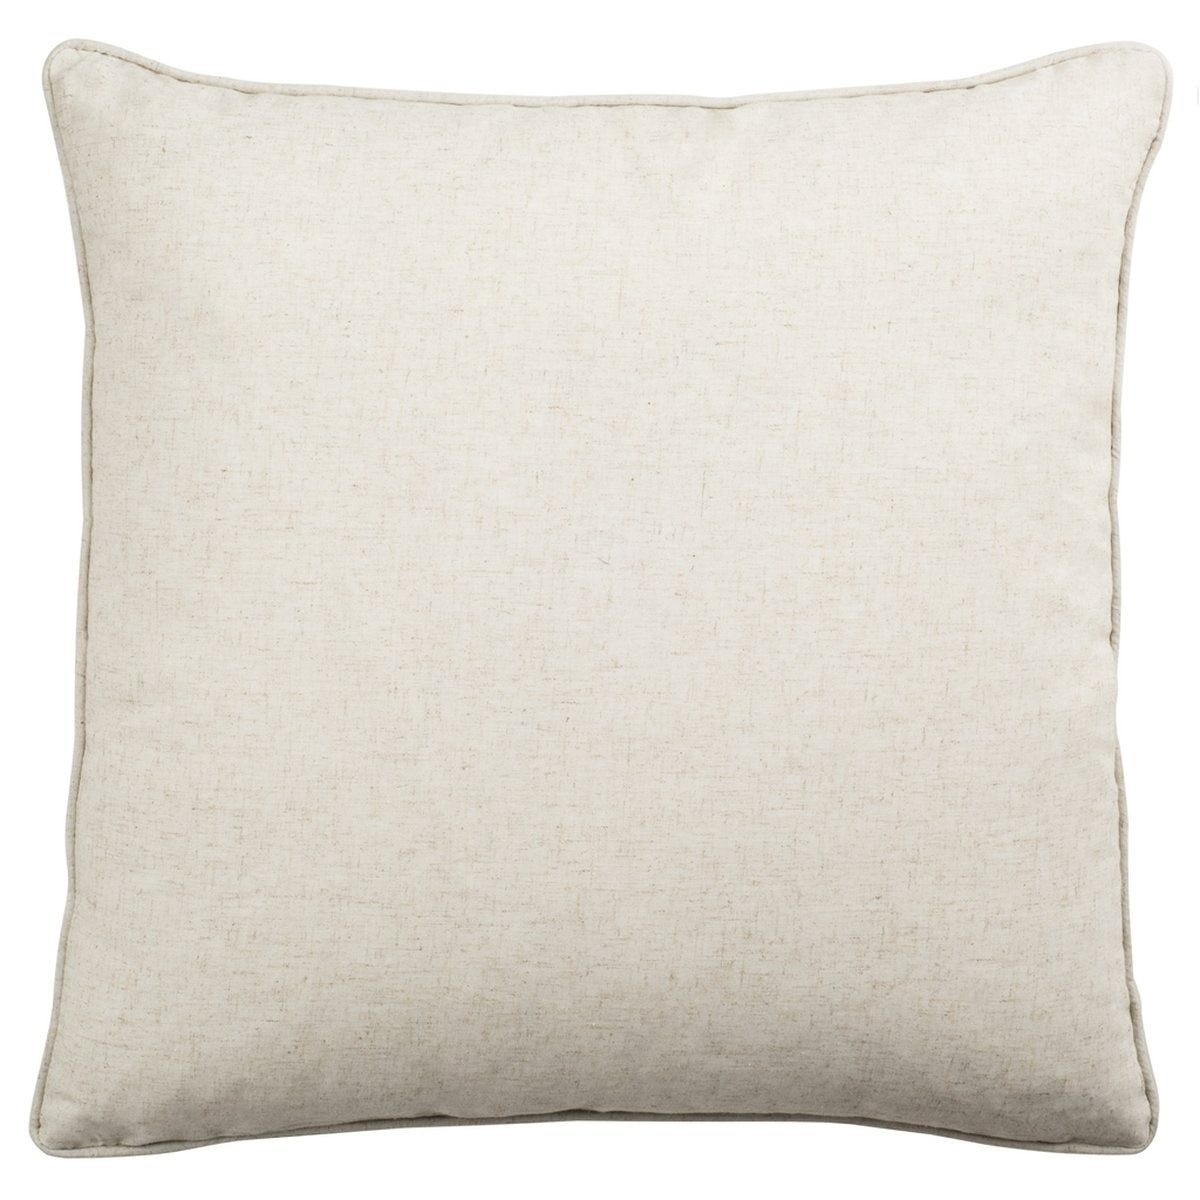 Maize Pillow.